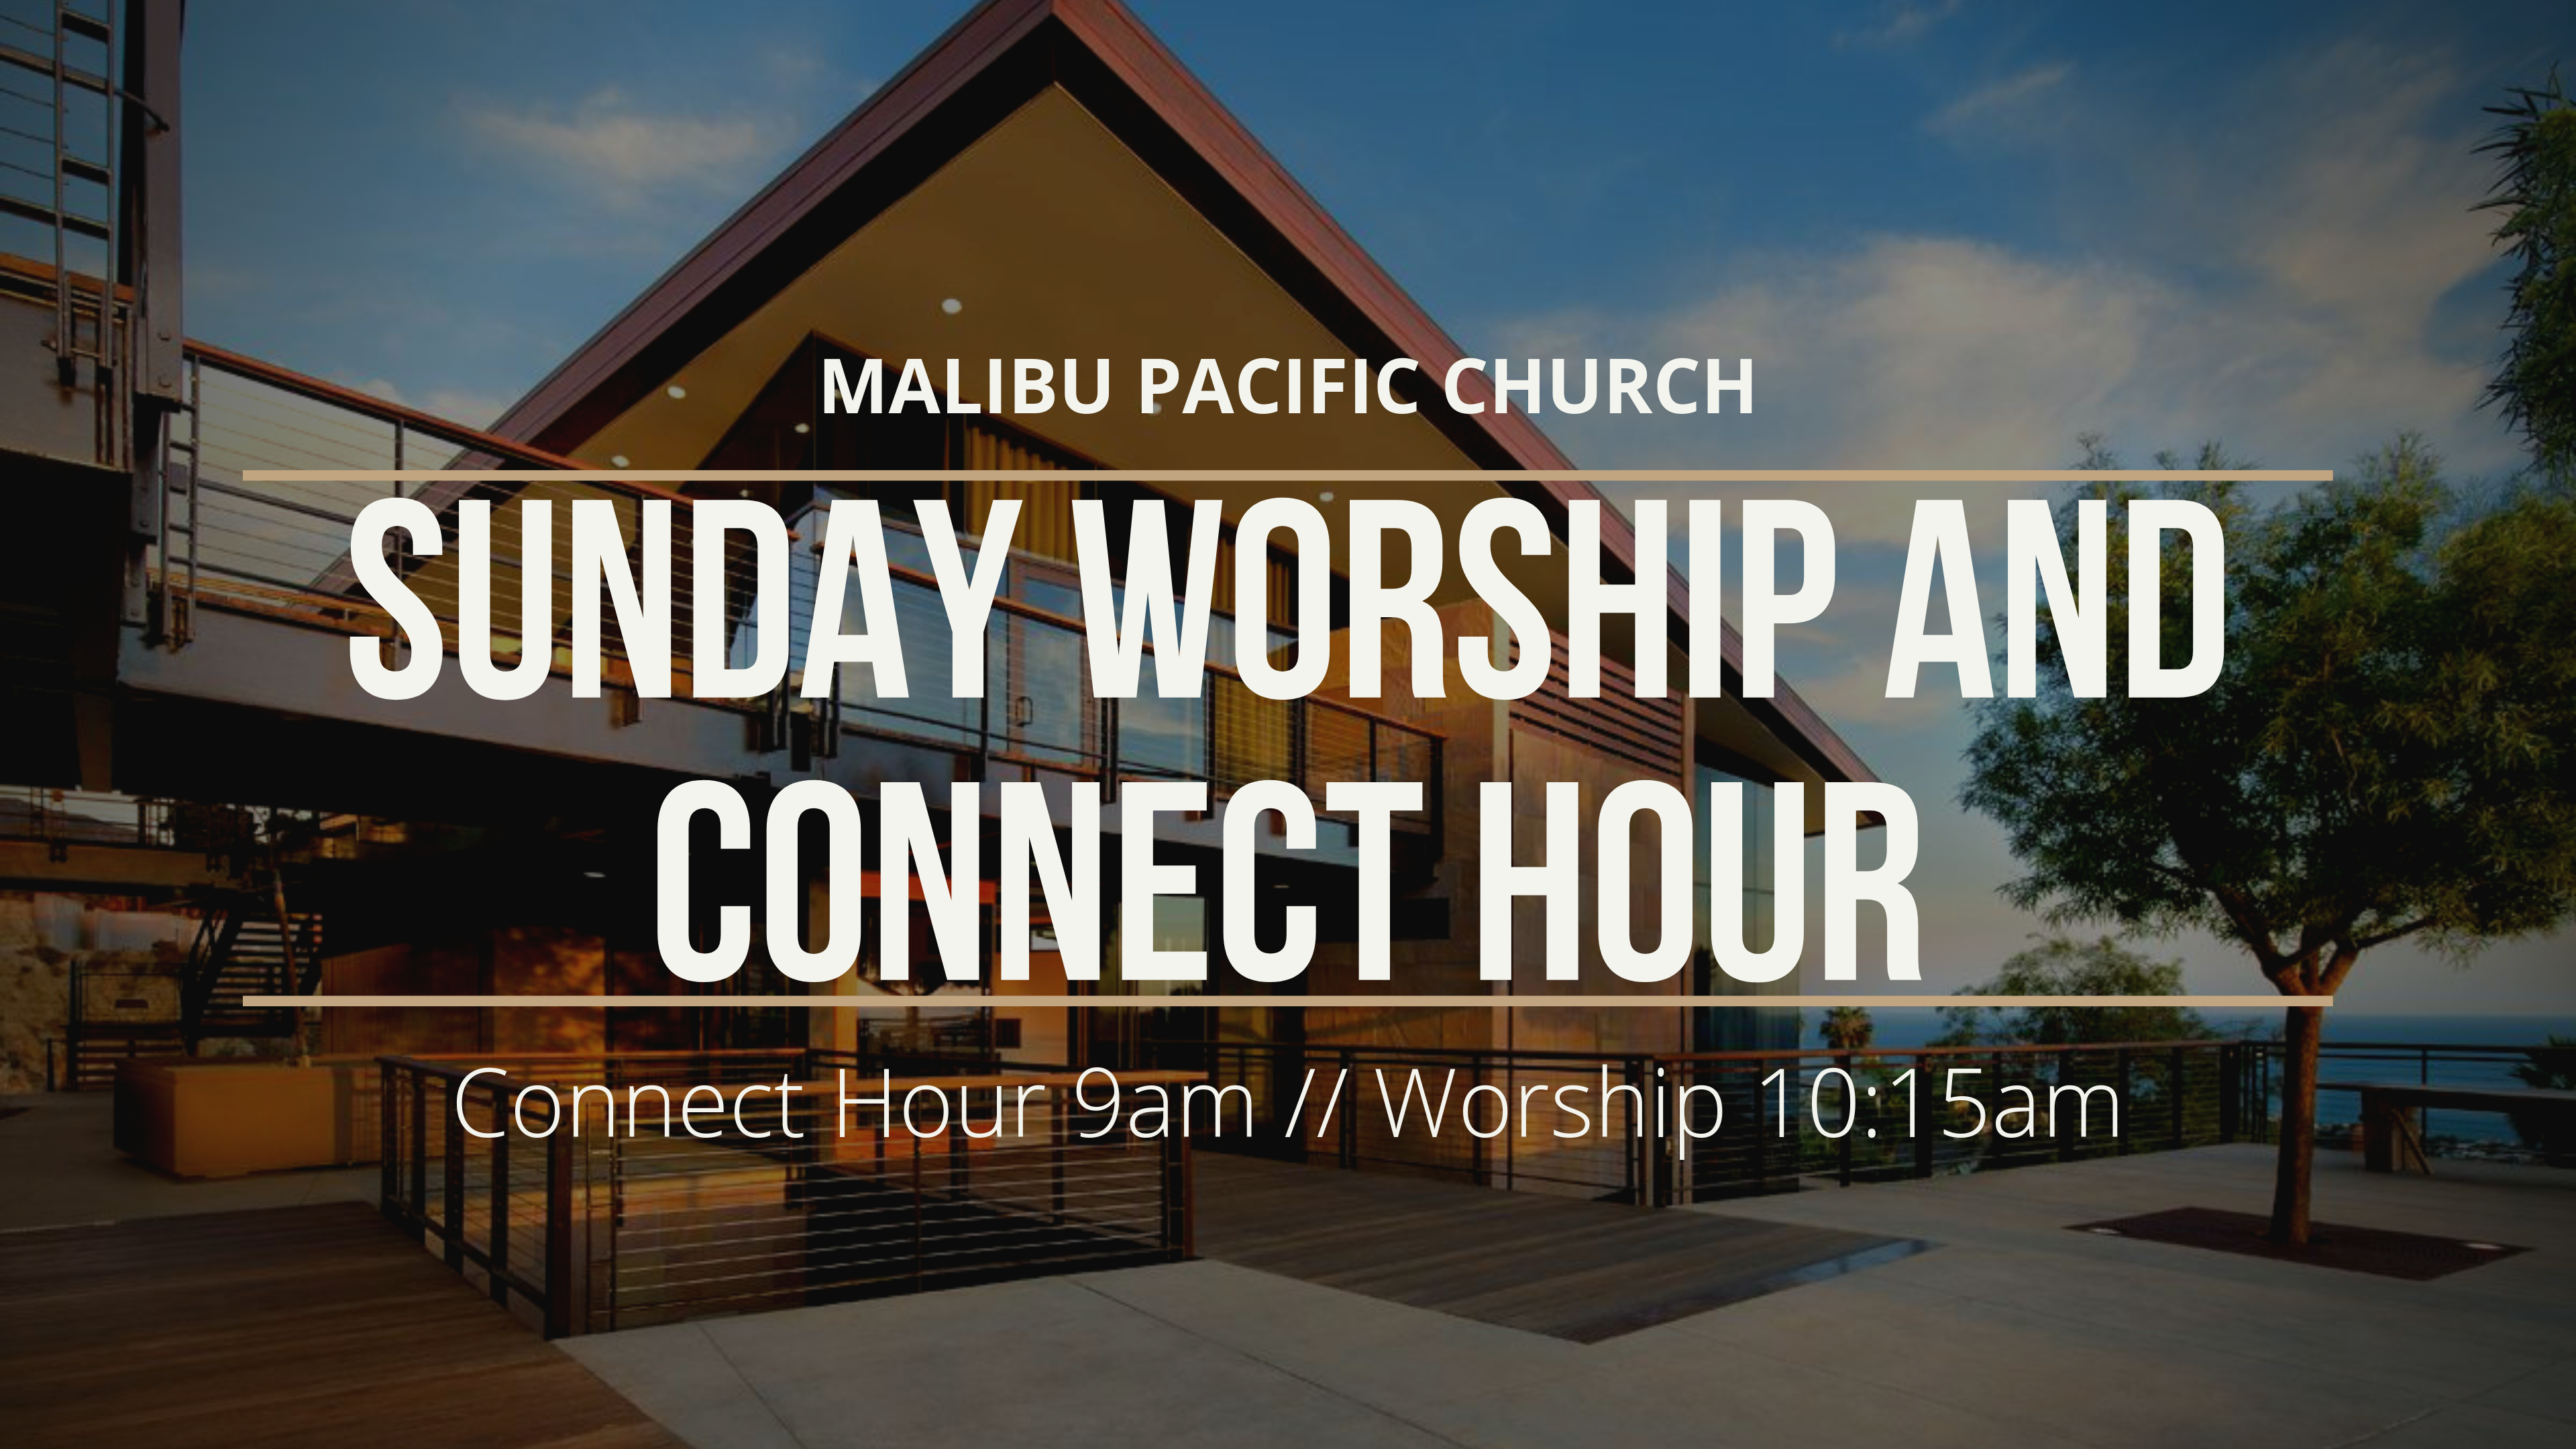 Sunday Worship Featured Image